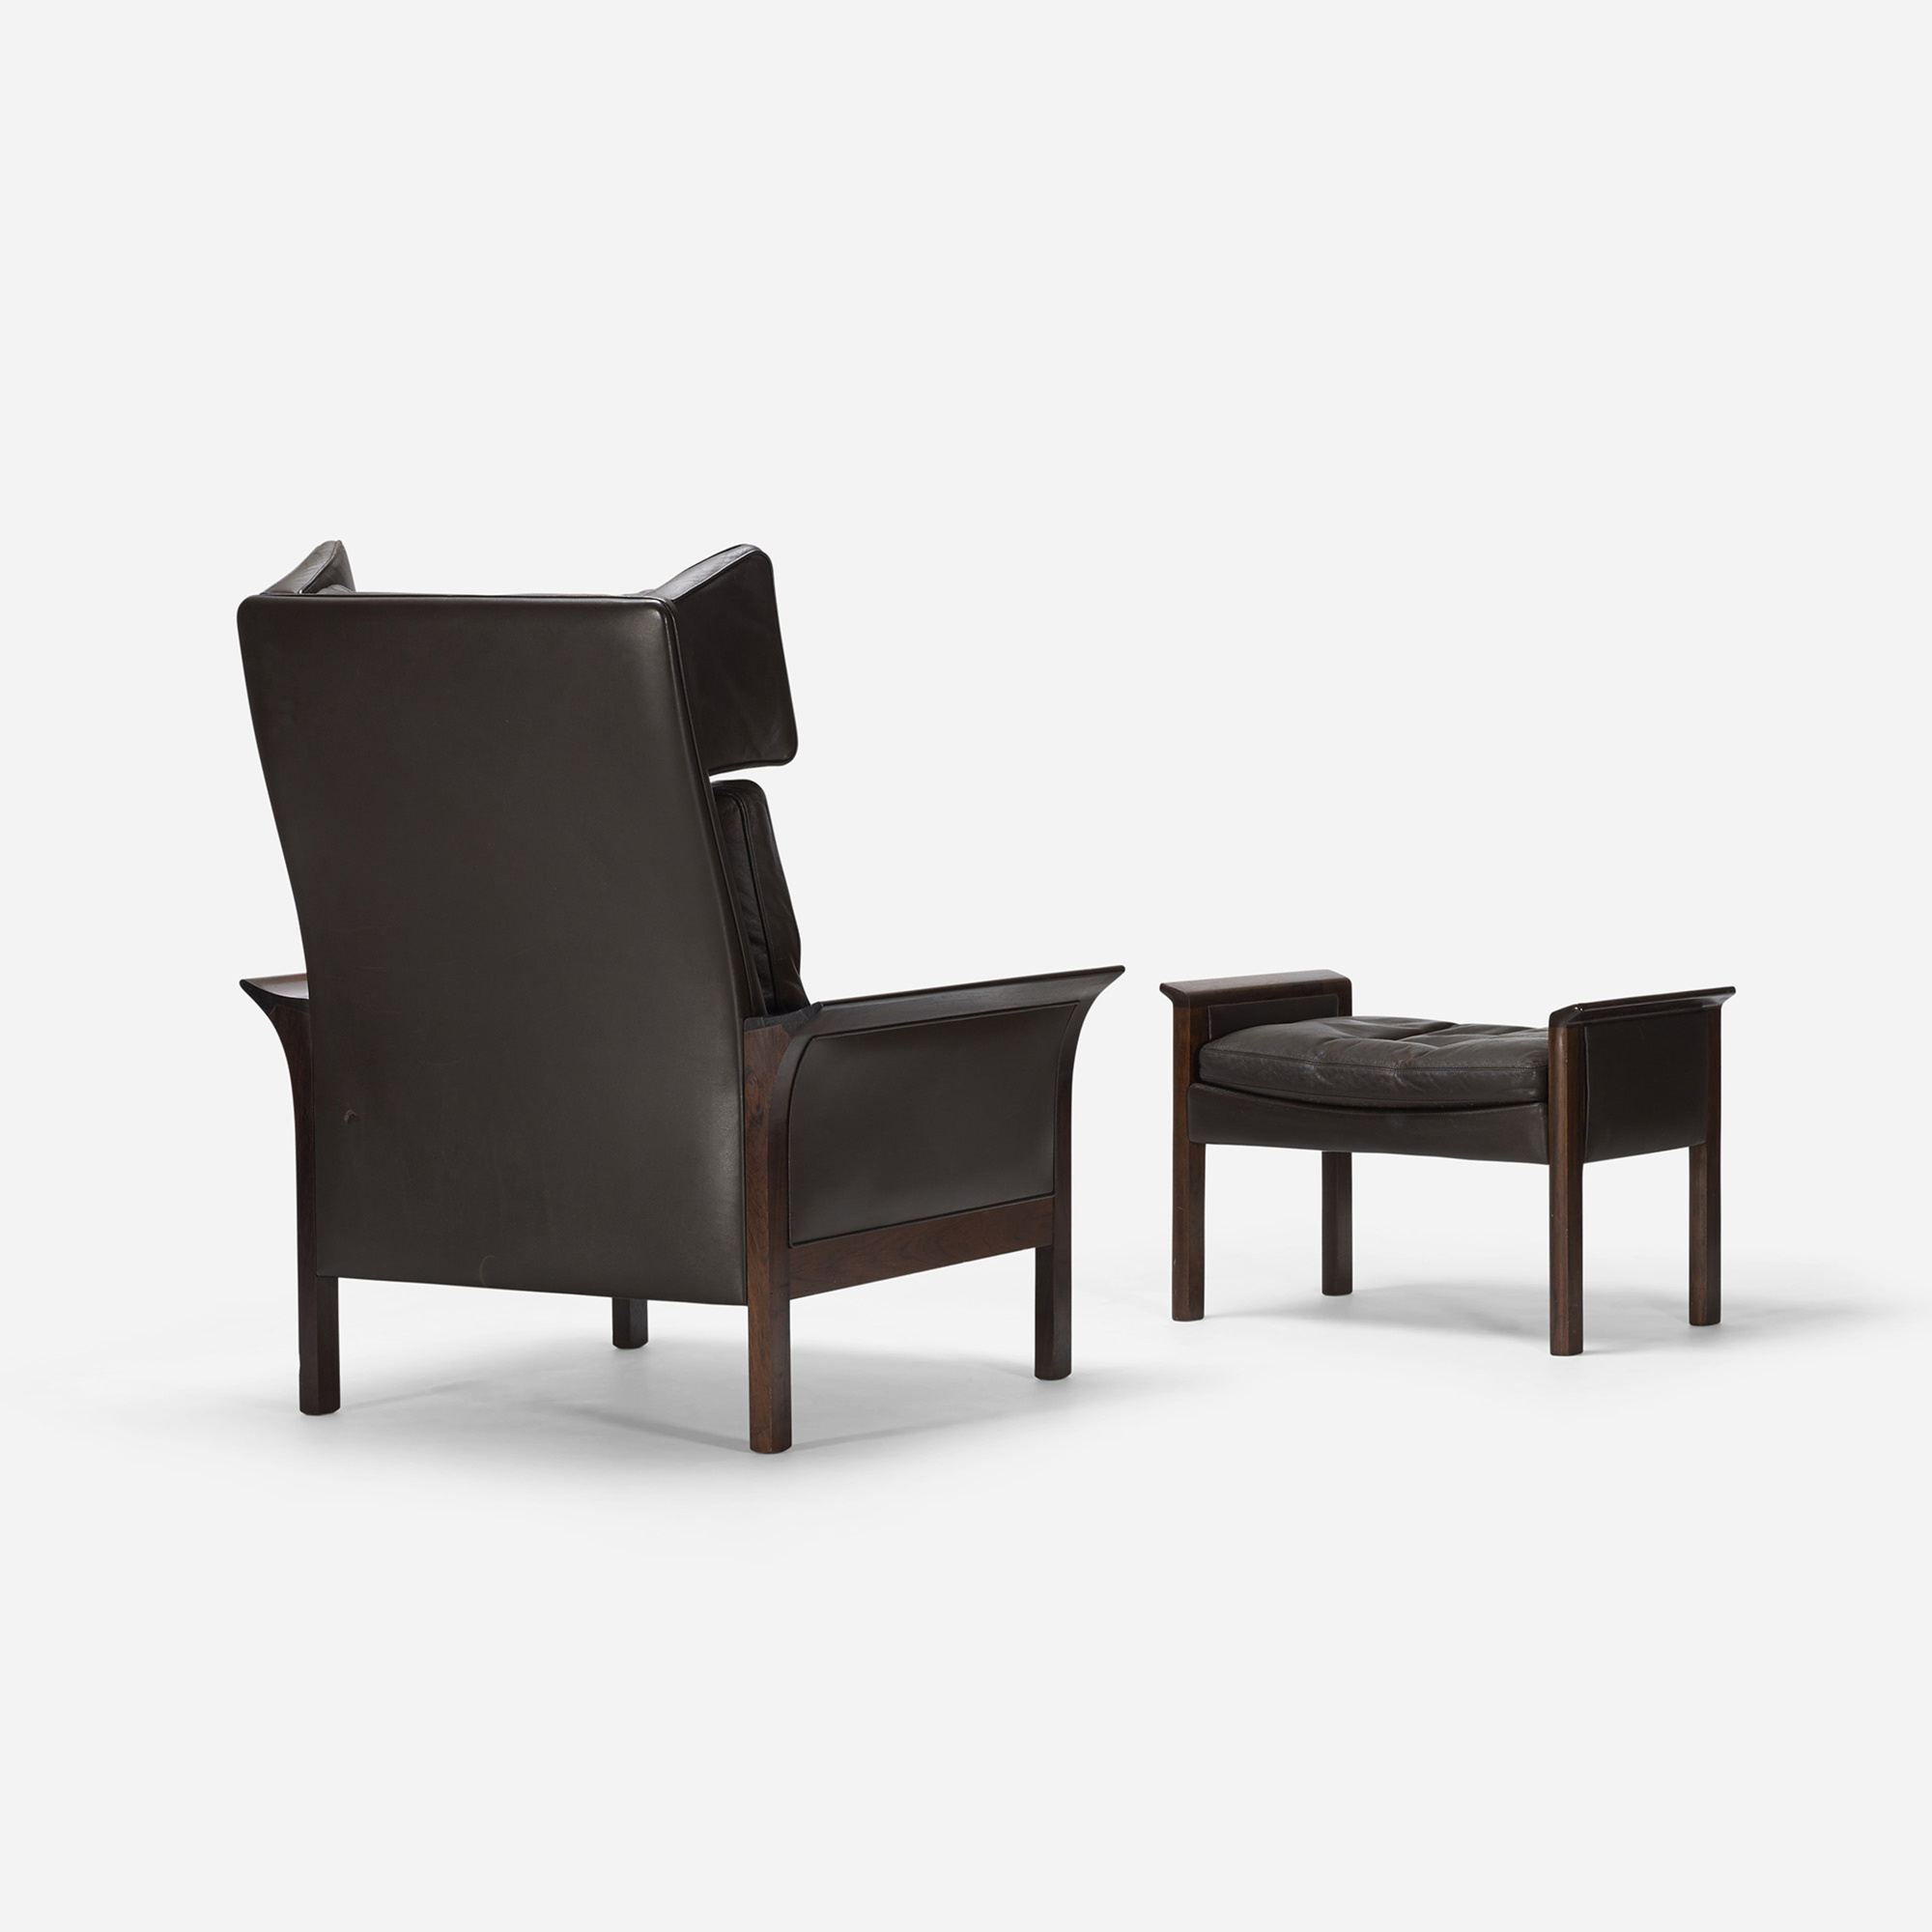 644: Hans Olsen / lounge chair and ottoman, model 500 H (3 of 5)